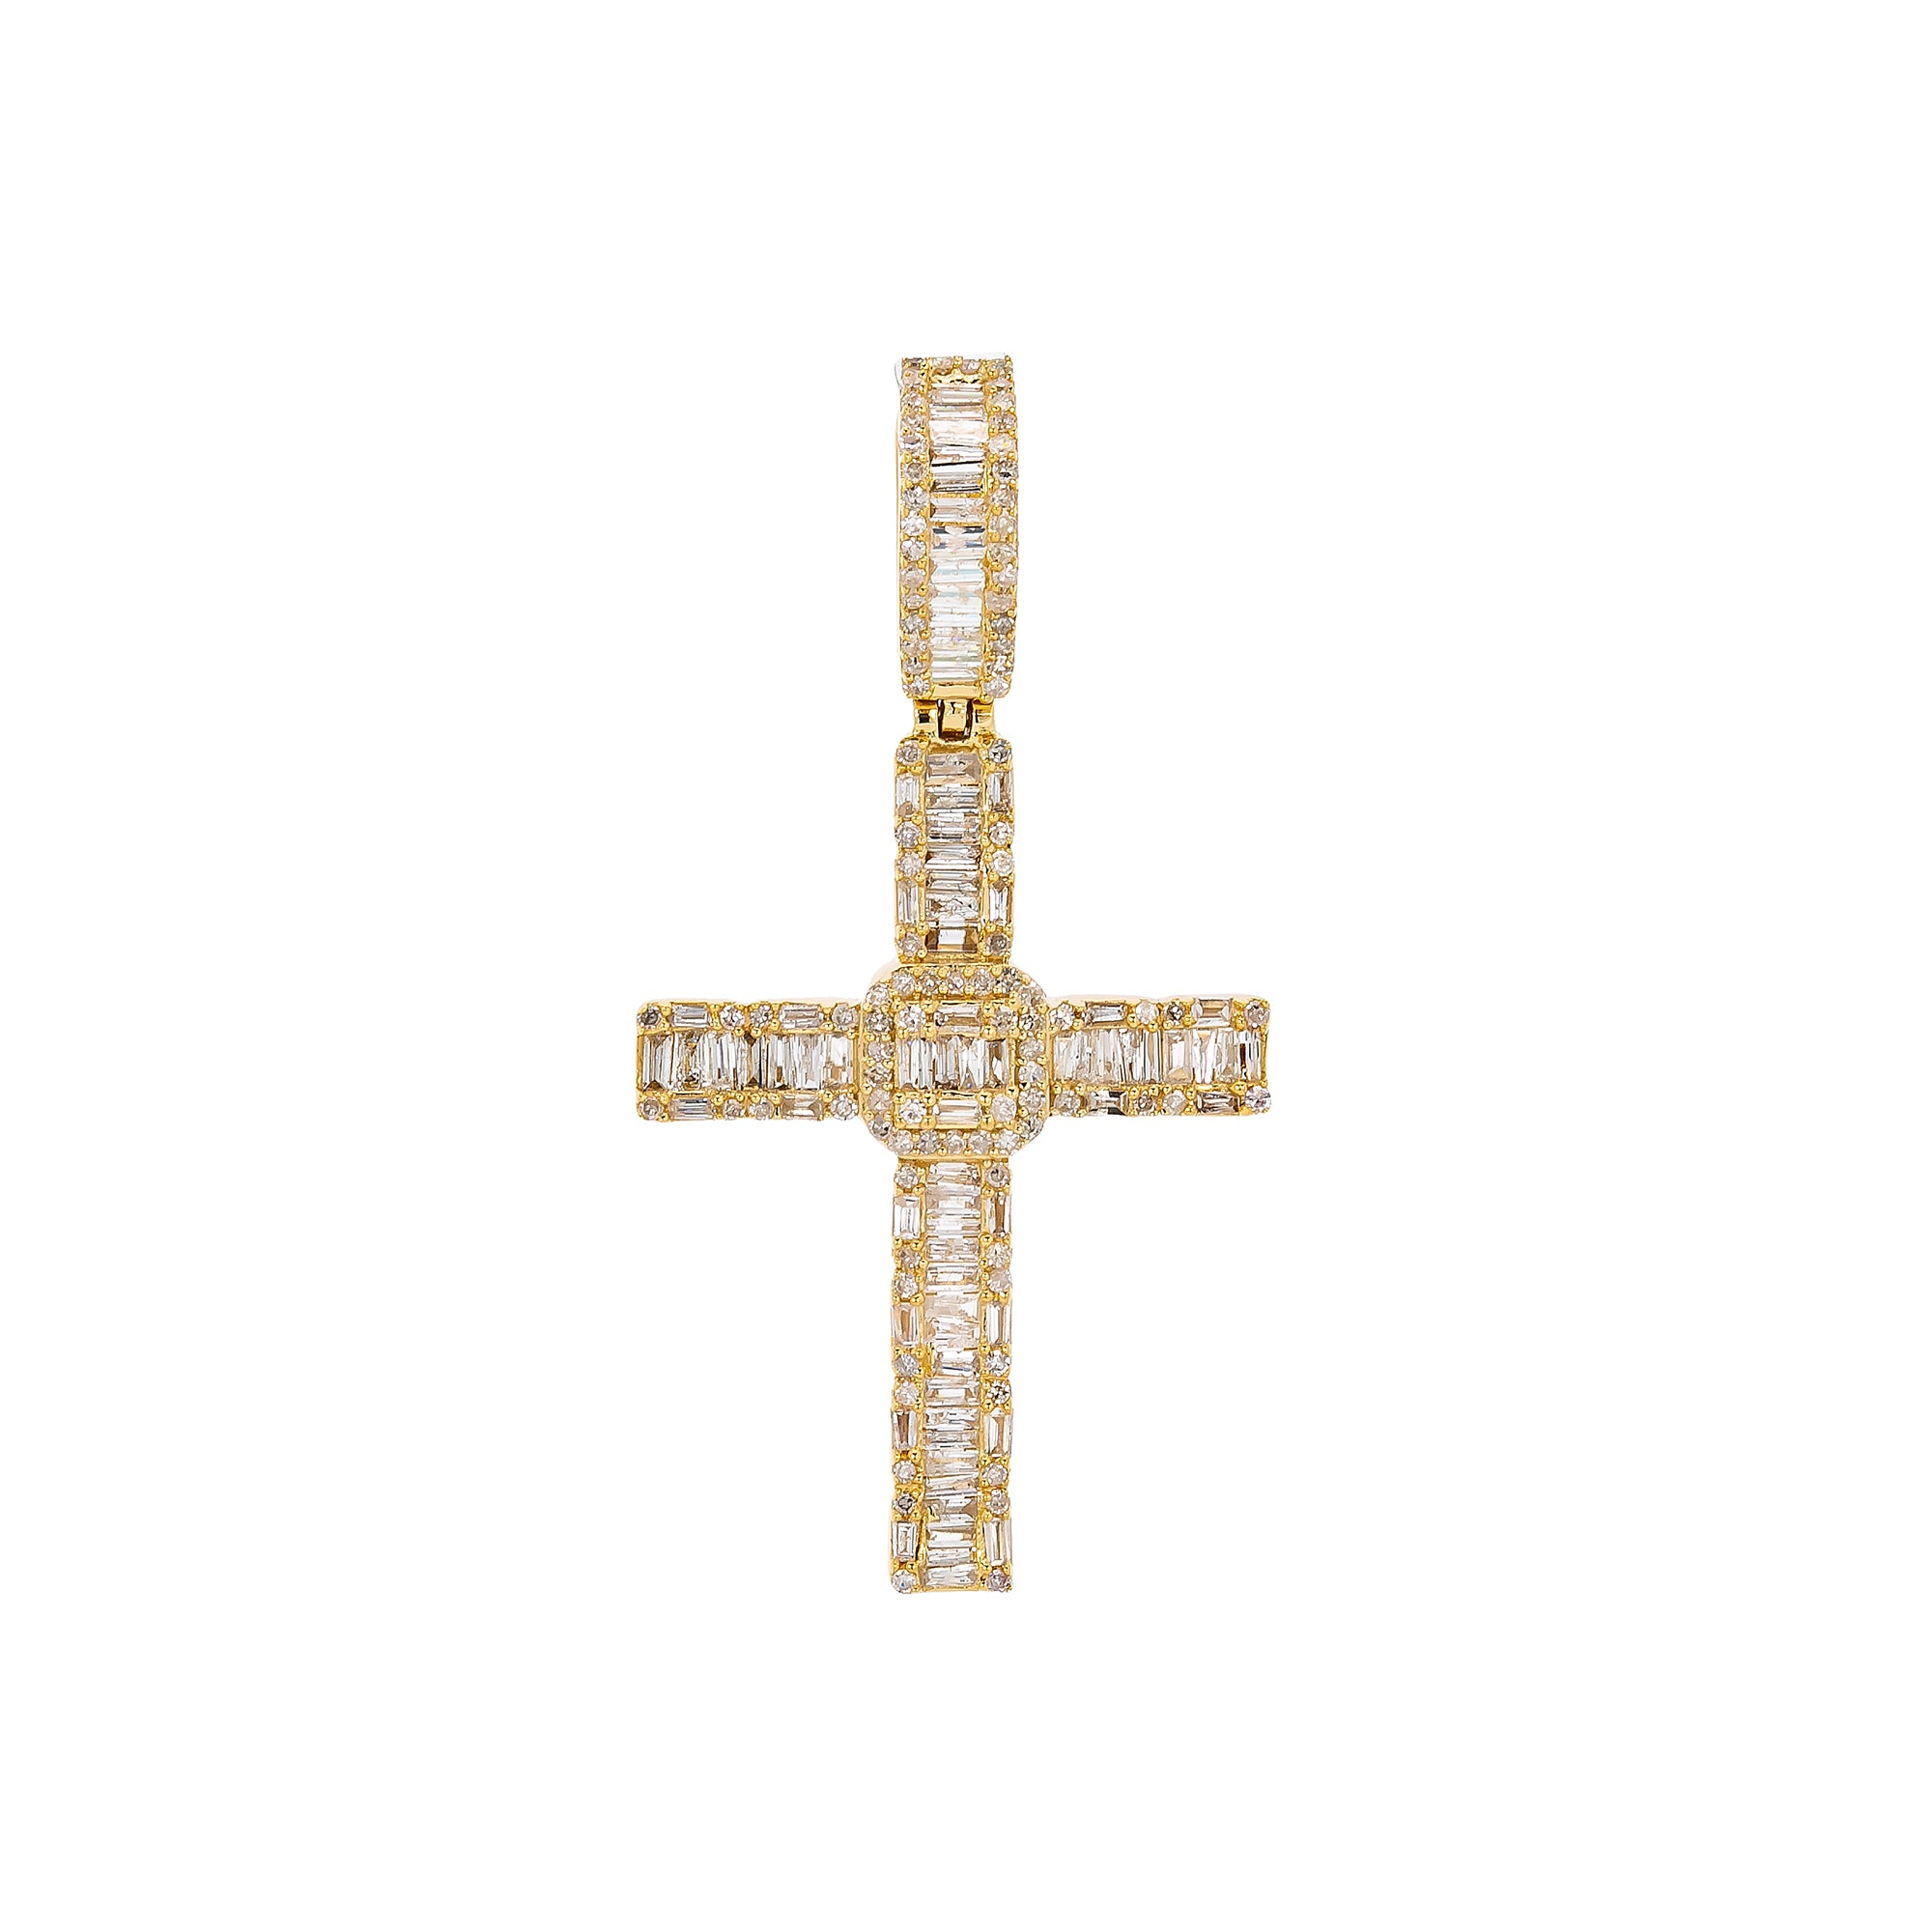 Unisex 14K Yellow Gold Cross Pendant with 0.91 CT Diamonds